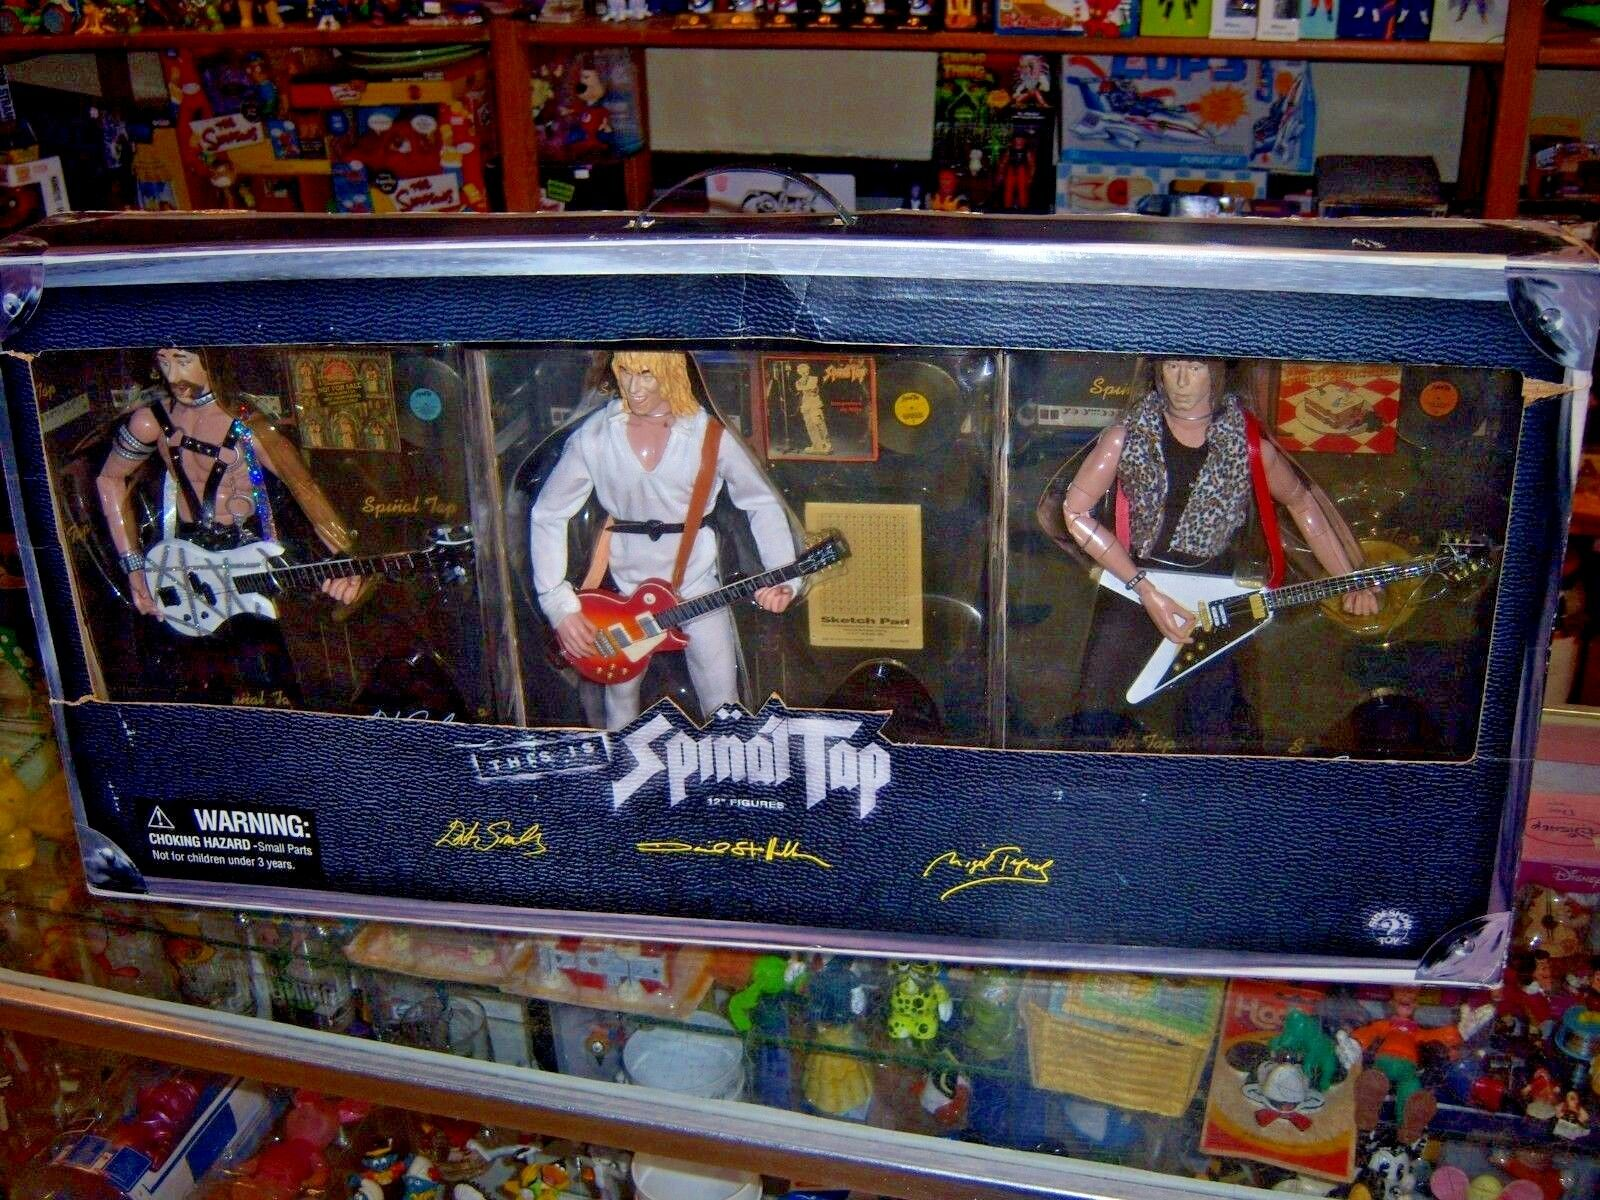 1;6 scale 12  This is Spinal Tap 3 cifra cifra cifra set (MISB) Sidemostrare (2000) bbbe65